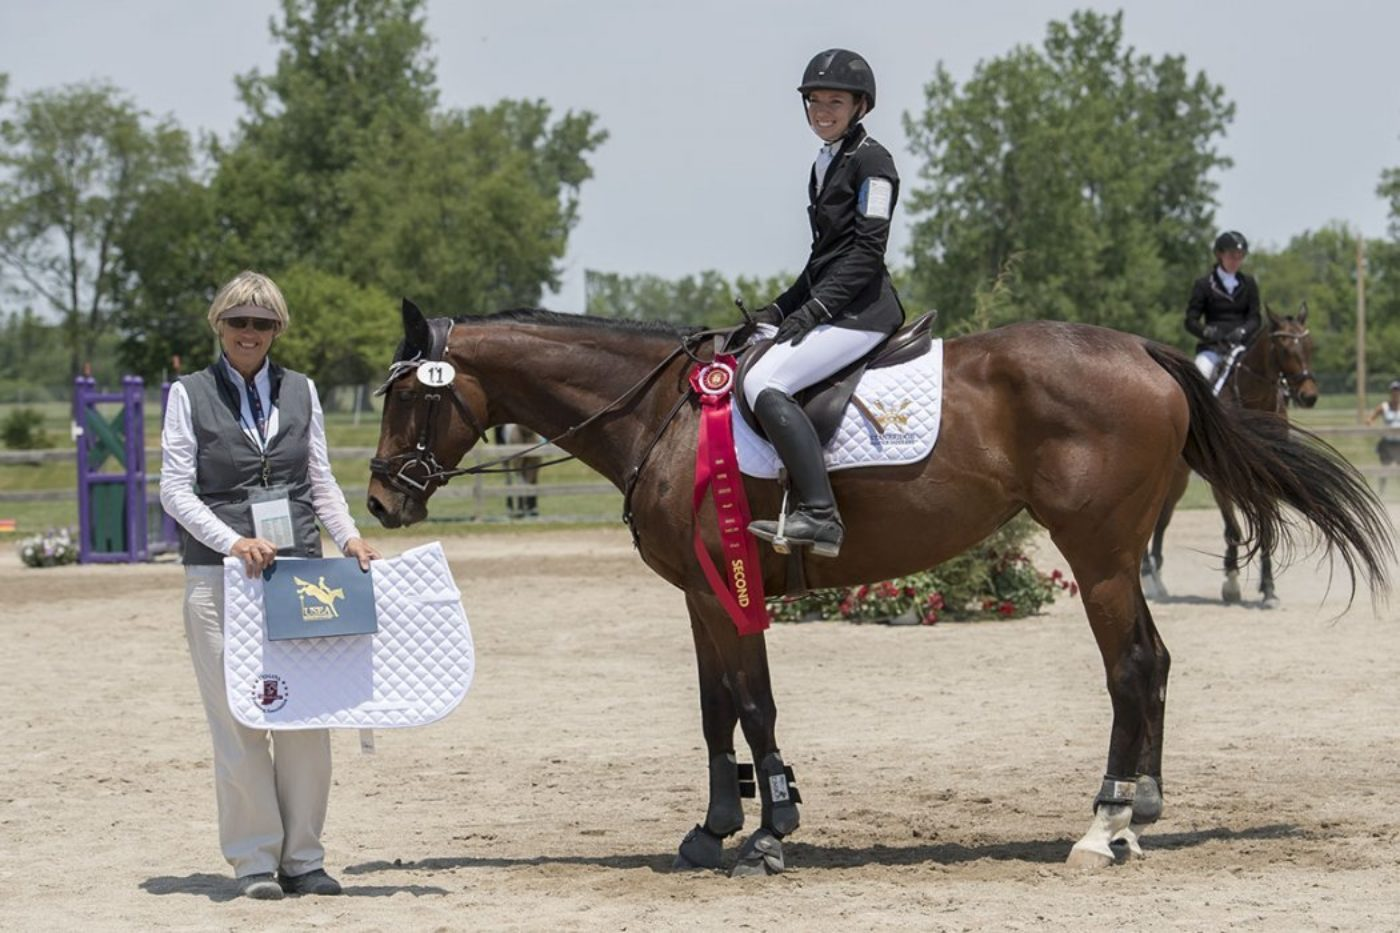 N3D - 2nd - Rebecca Geringer and Hakuna Matata. Allen MacMillan Photo.